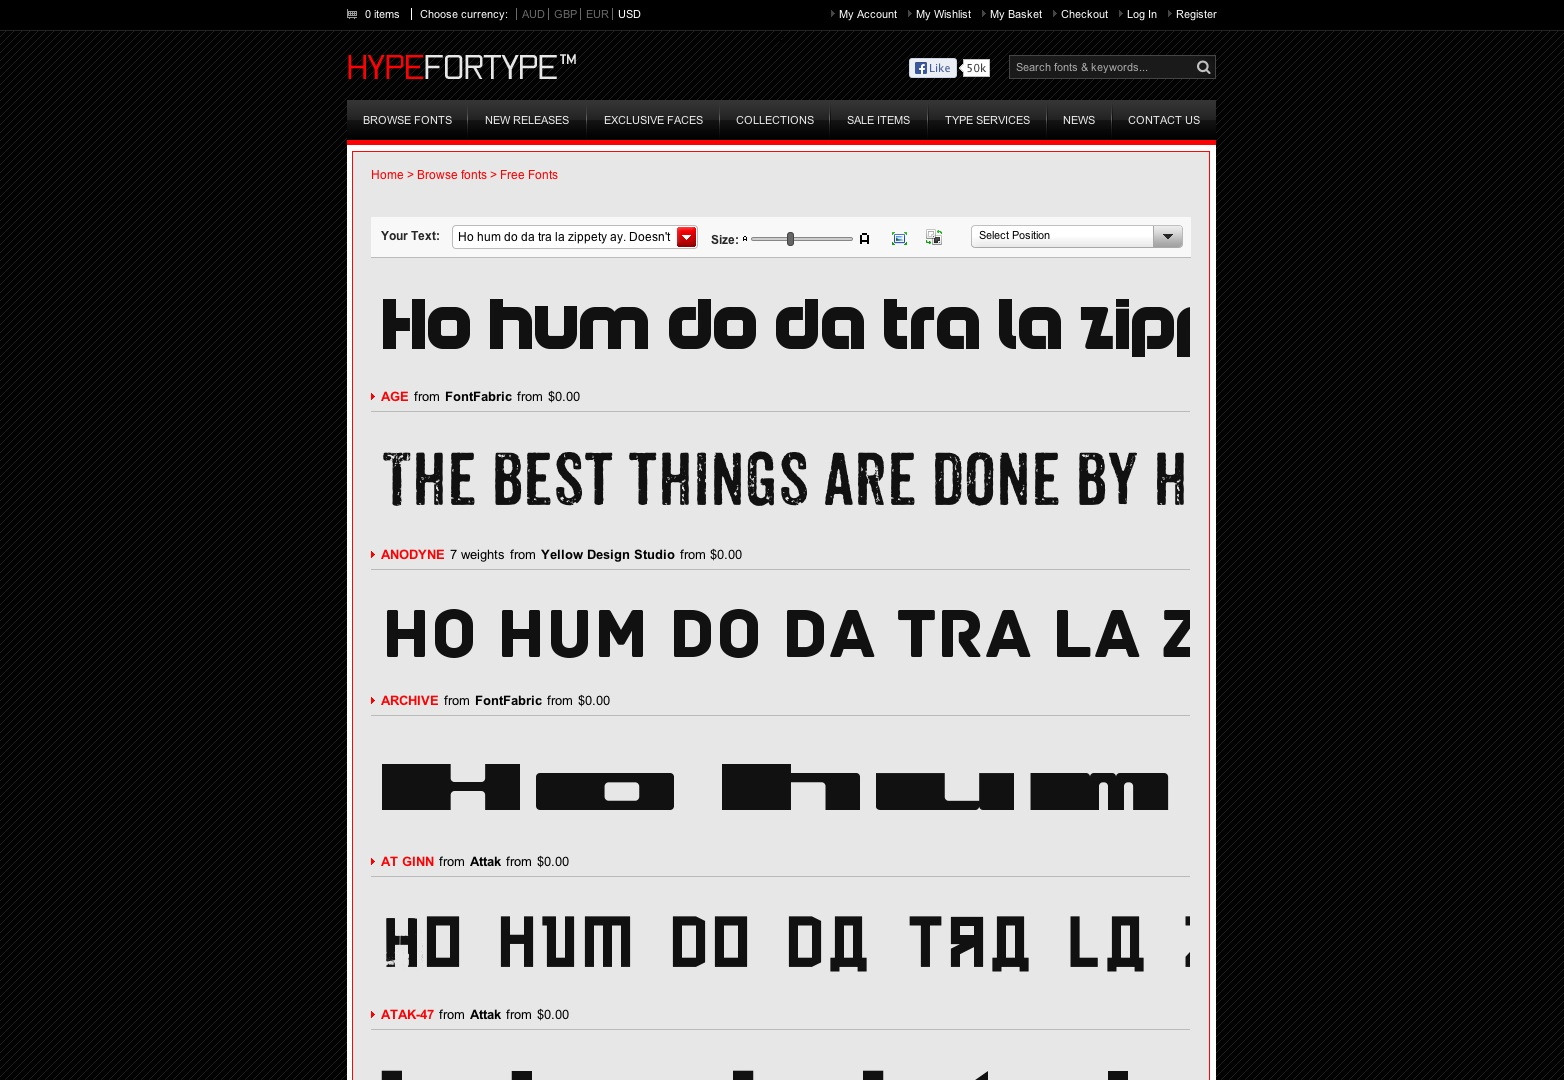 Free Fonts - Browse fonts